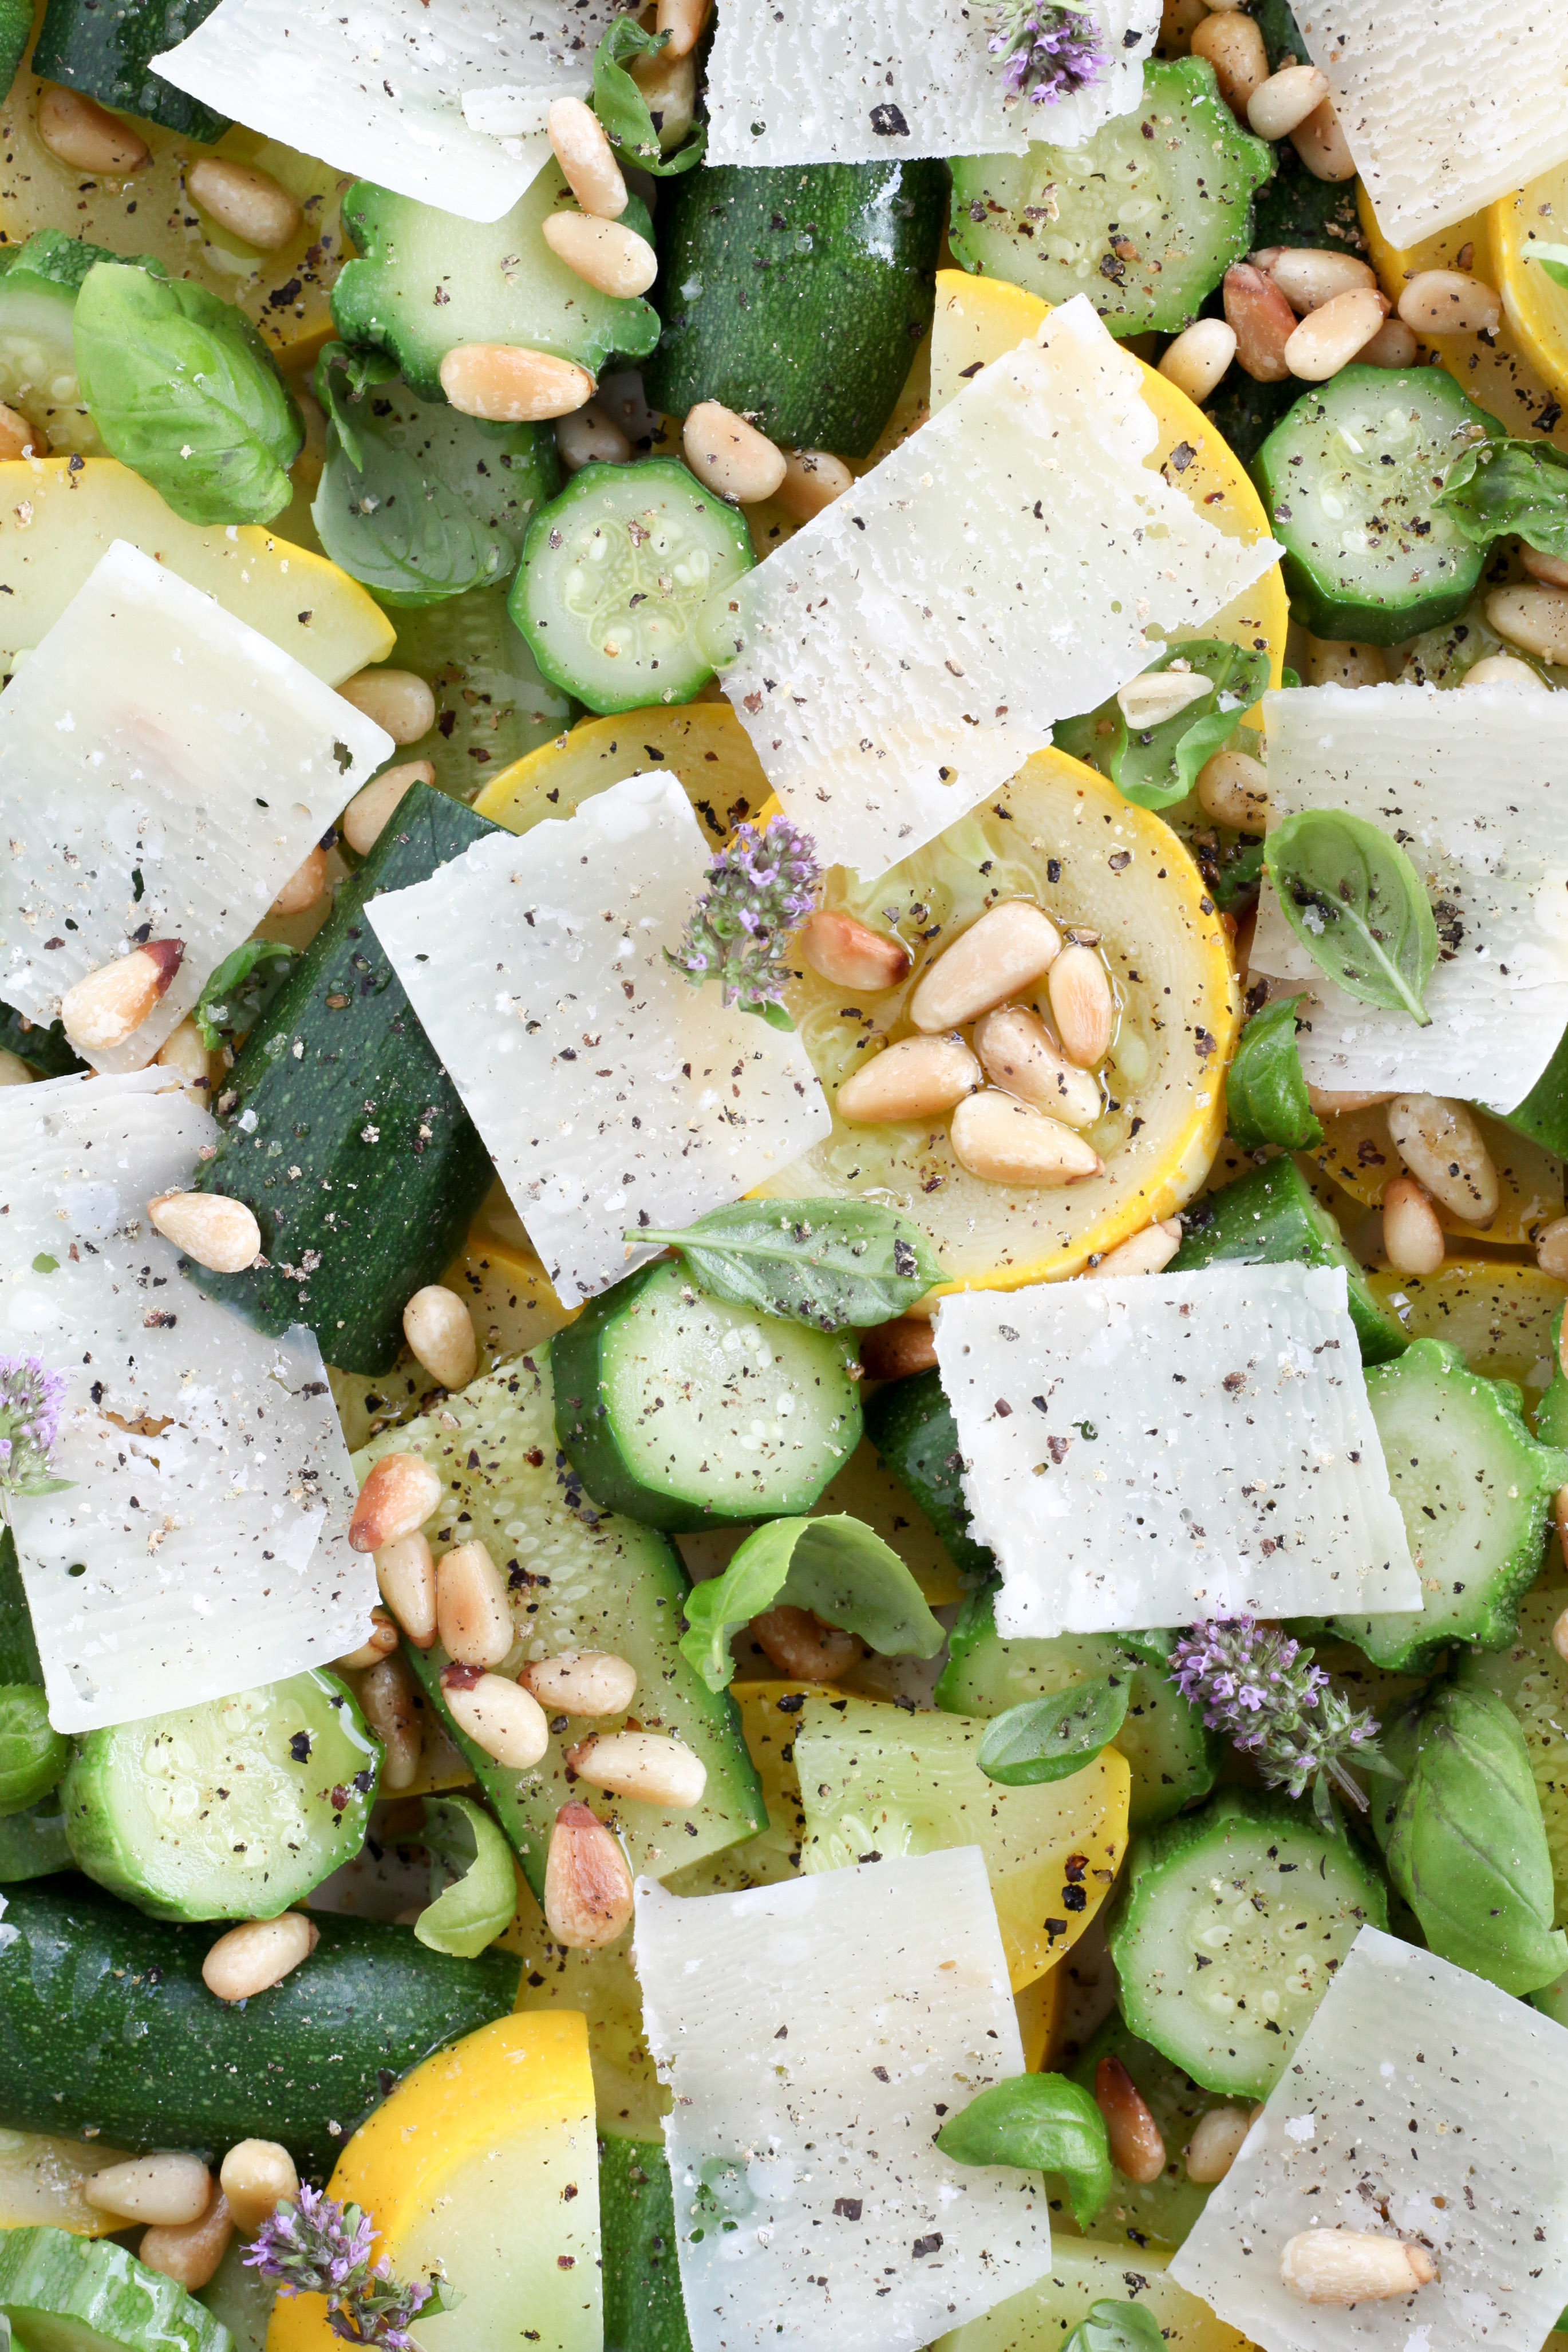 Summer Squash With Pine Nuts, Parmesan, and Basil (vegetarian, gluten-free, low-carb) | A Modest Feast | @amodestfeast